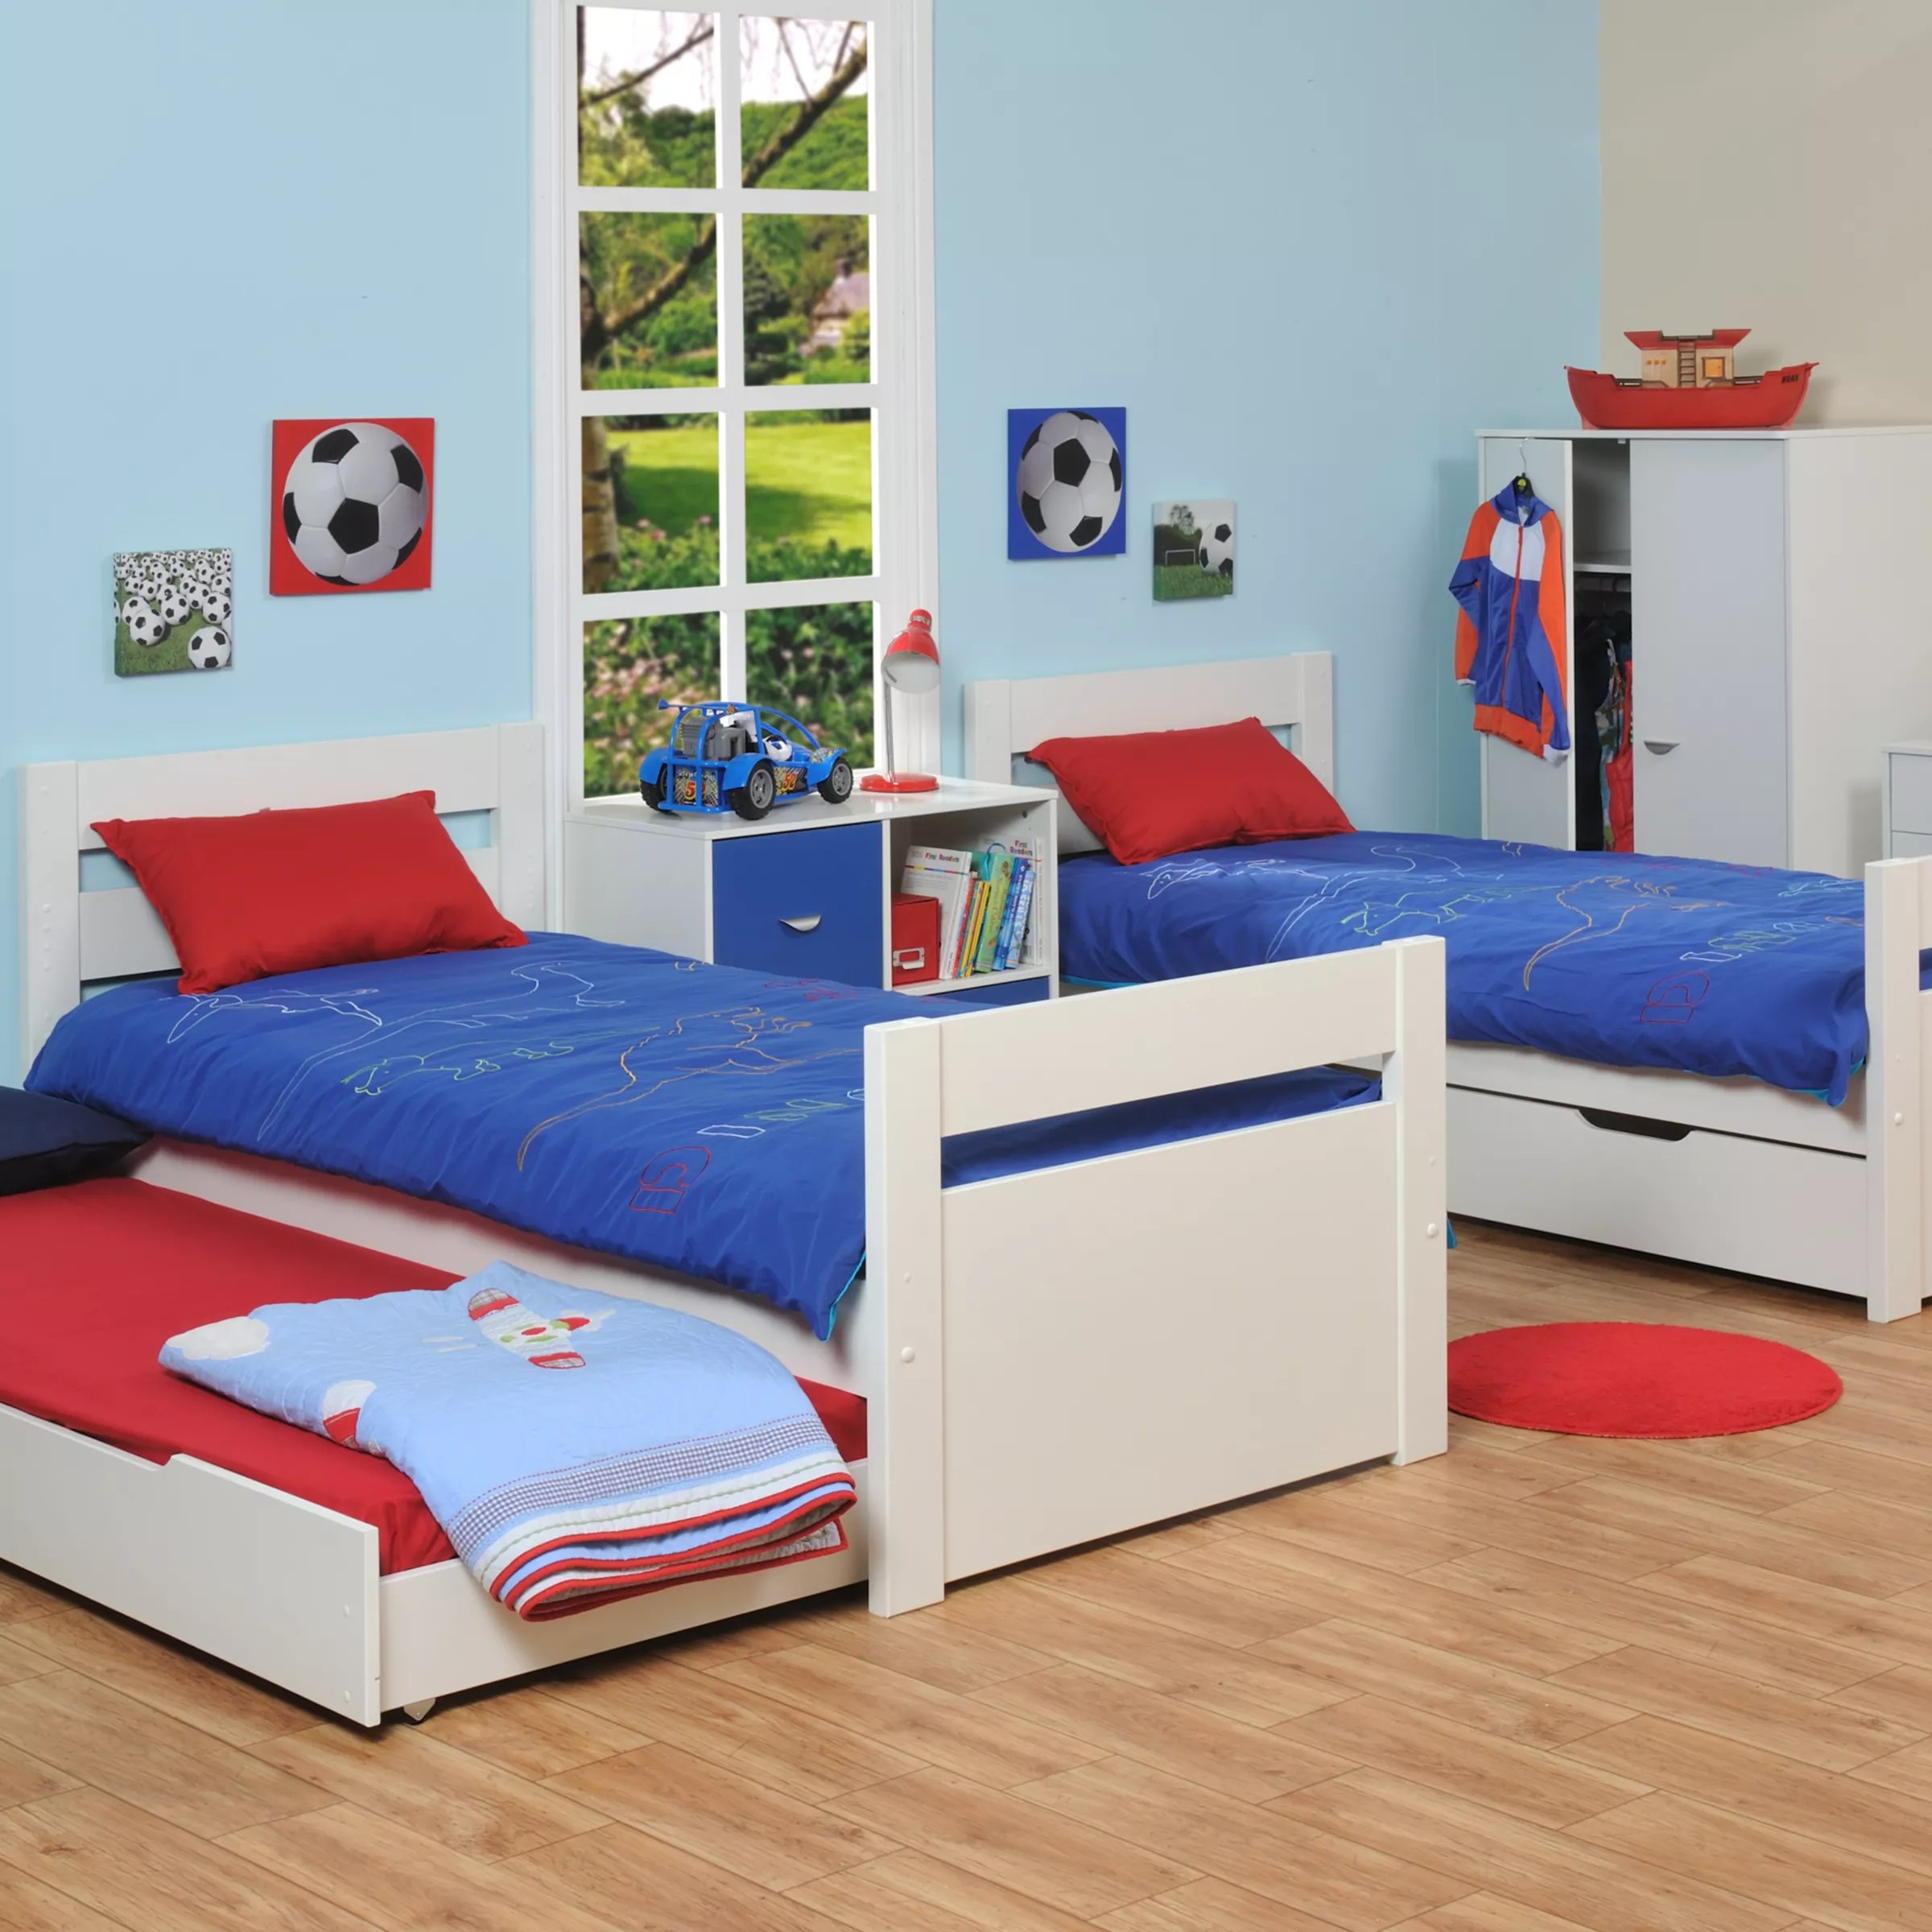 Stompa Classic Bunk Bed Stompa Originals Multi Bunk Bed With Trundle